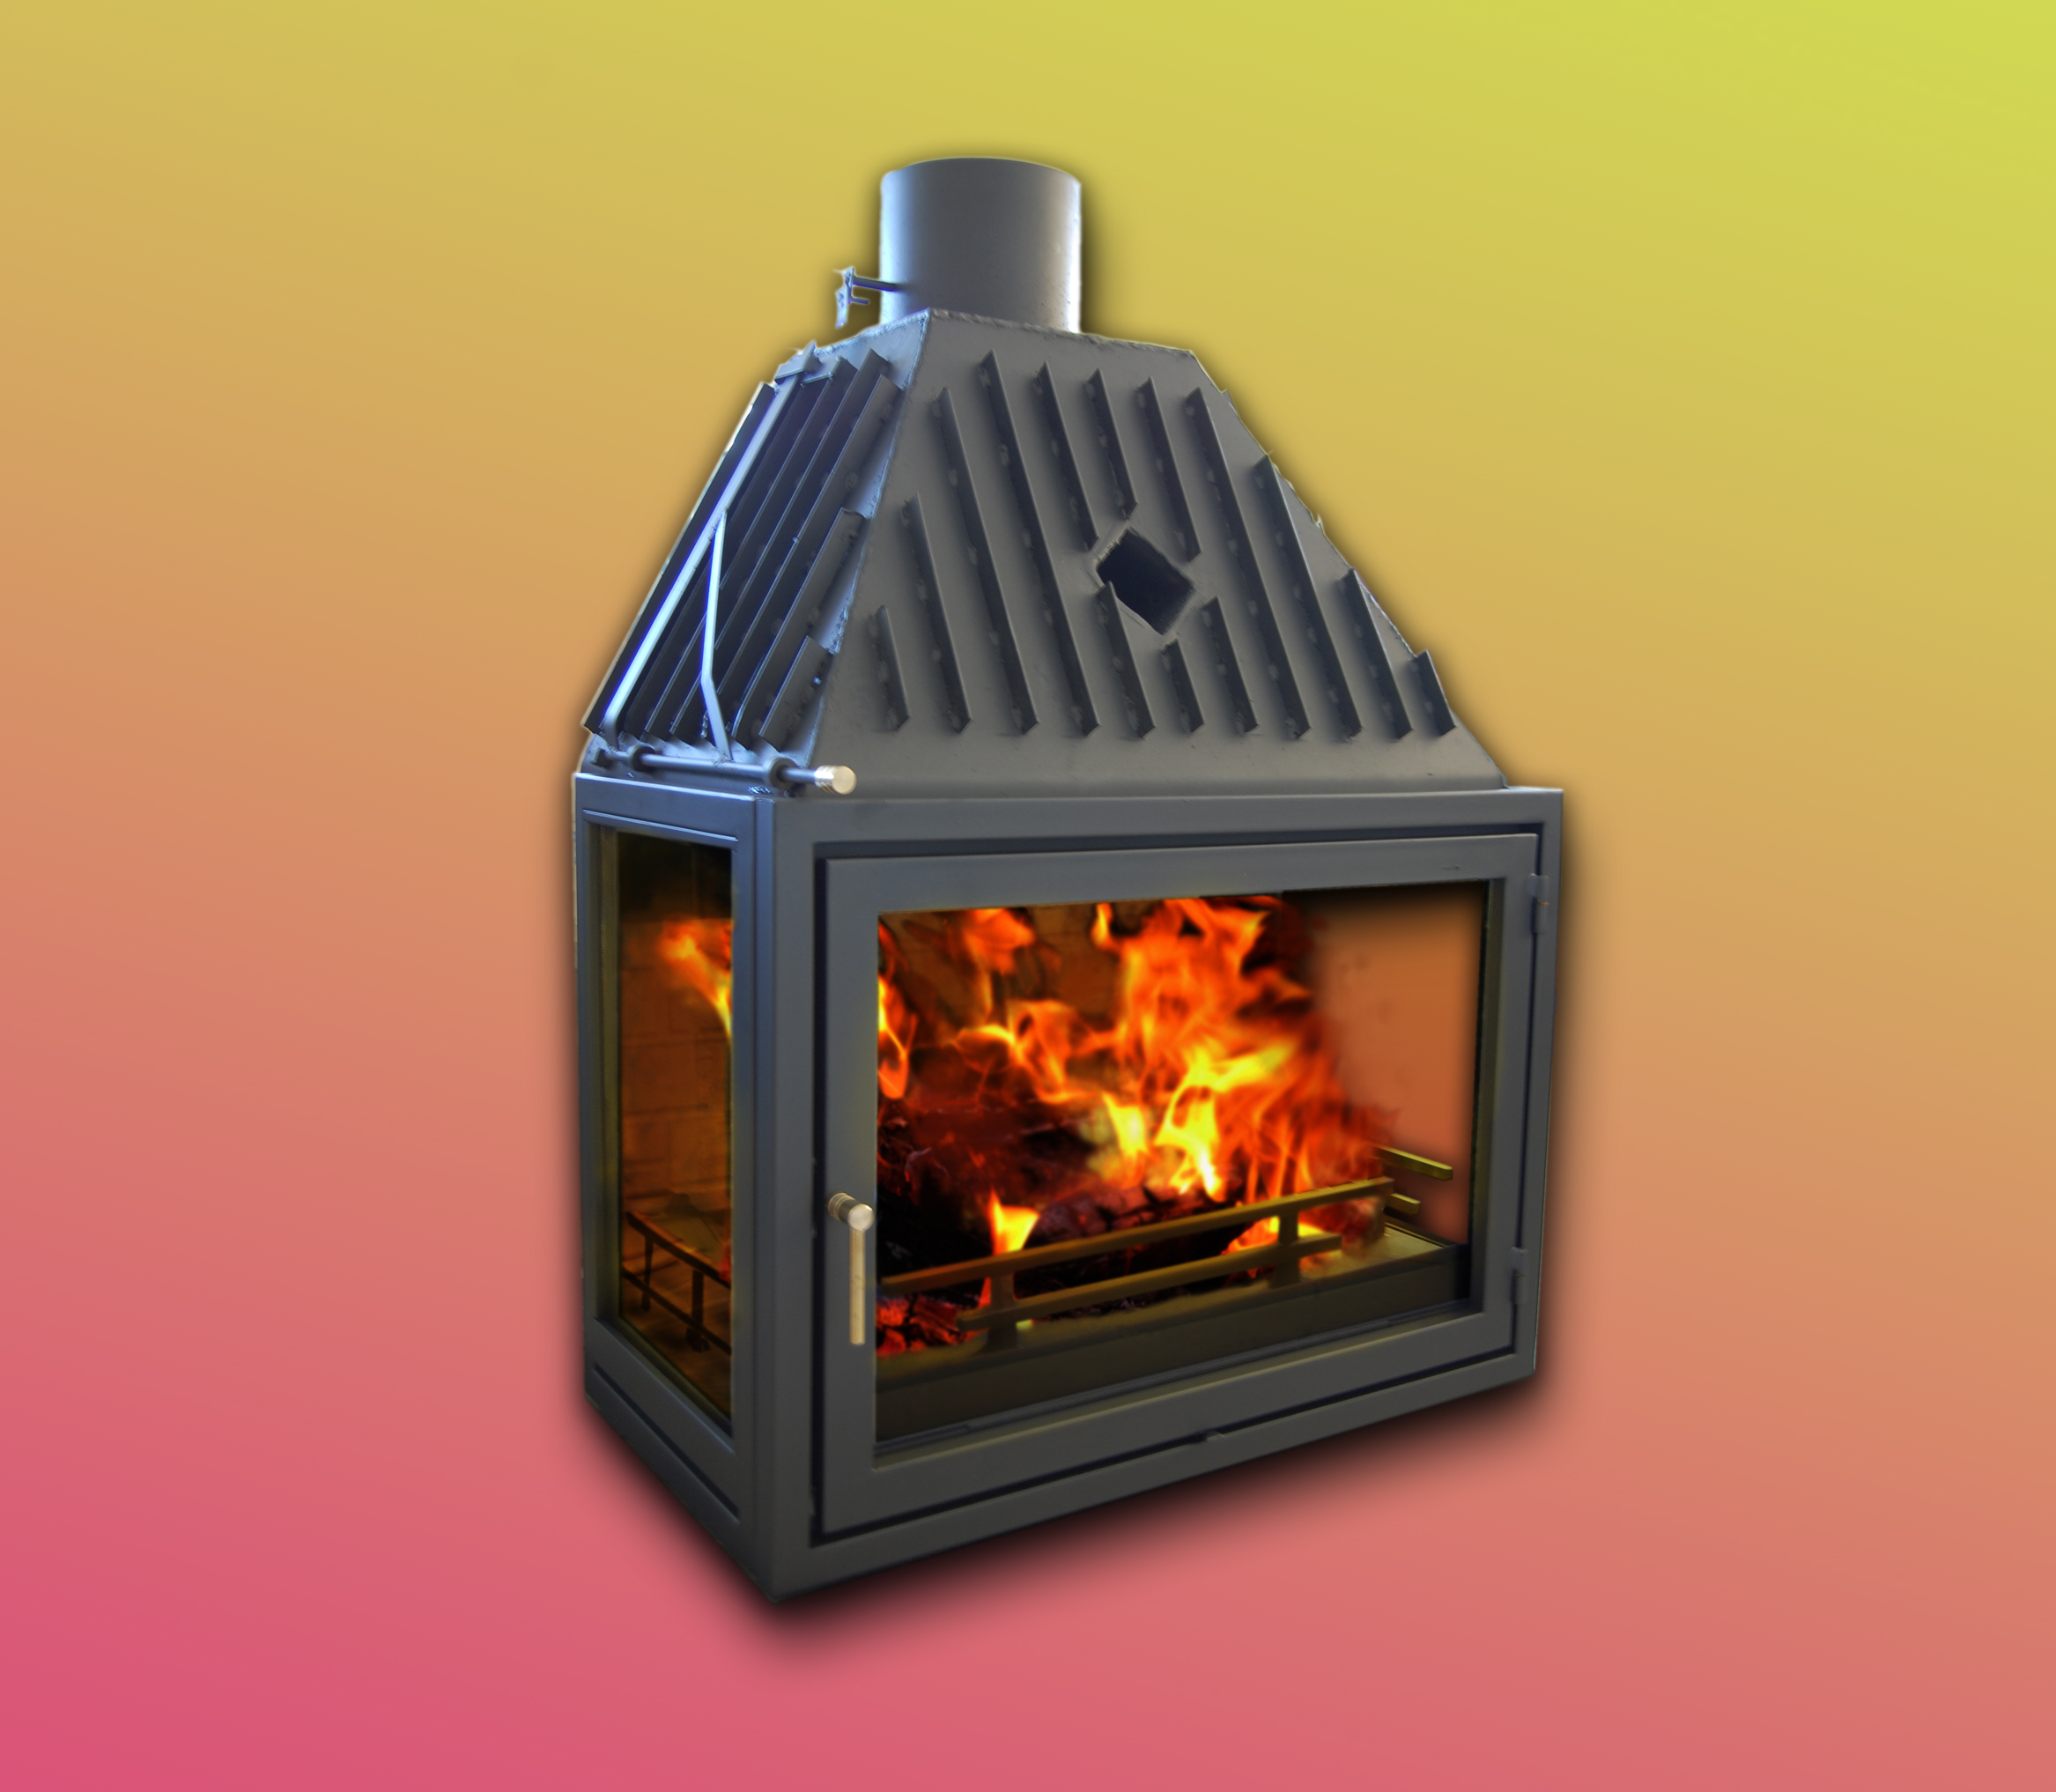 Solid fuel stoves and fireplaces